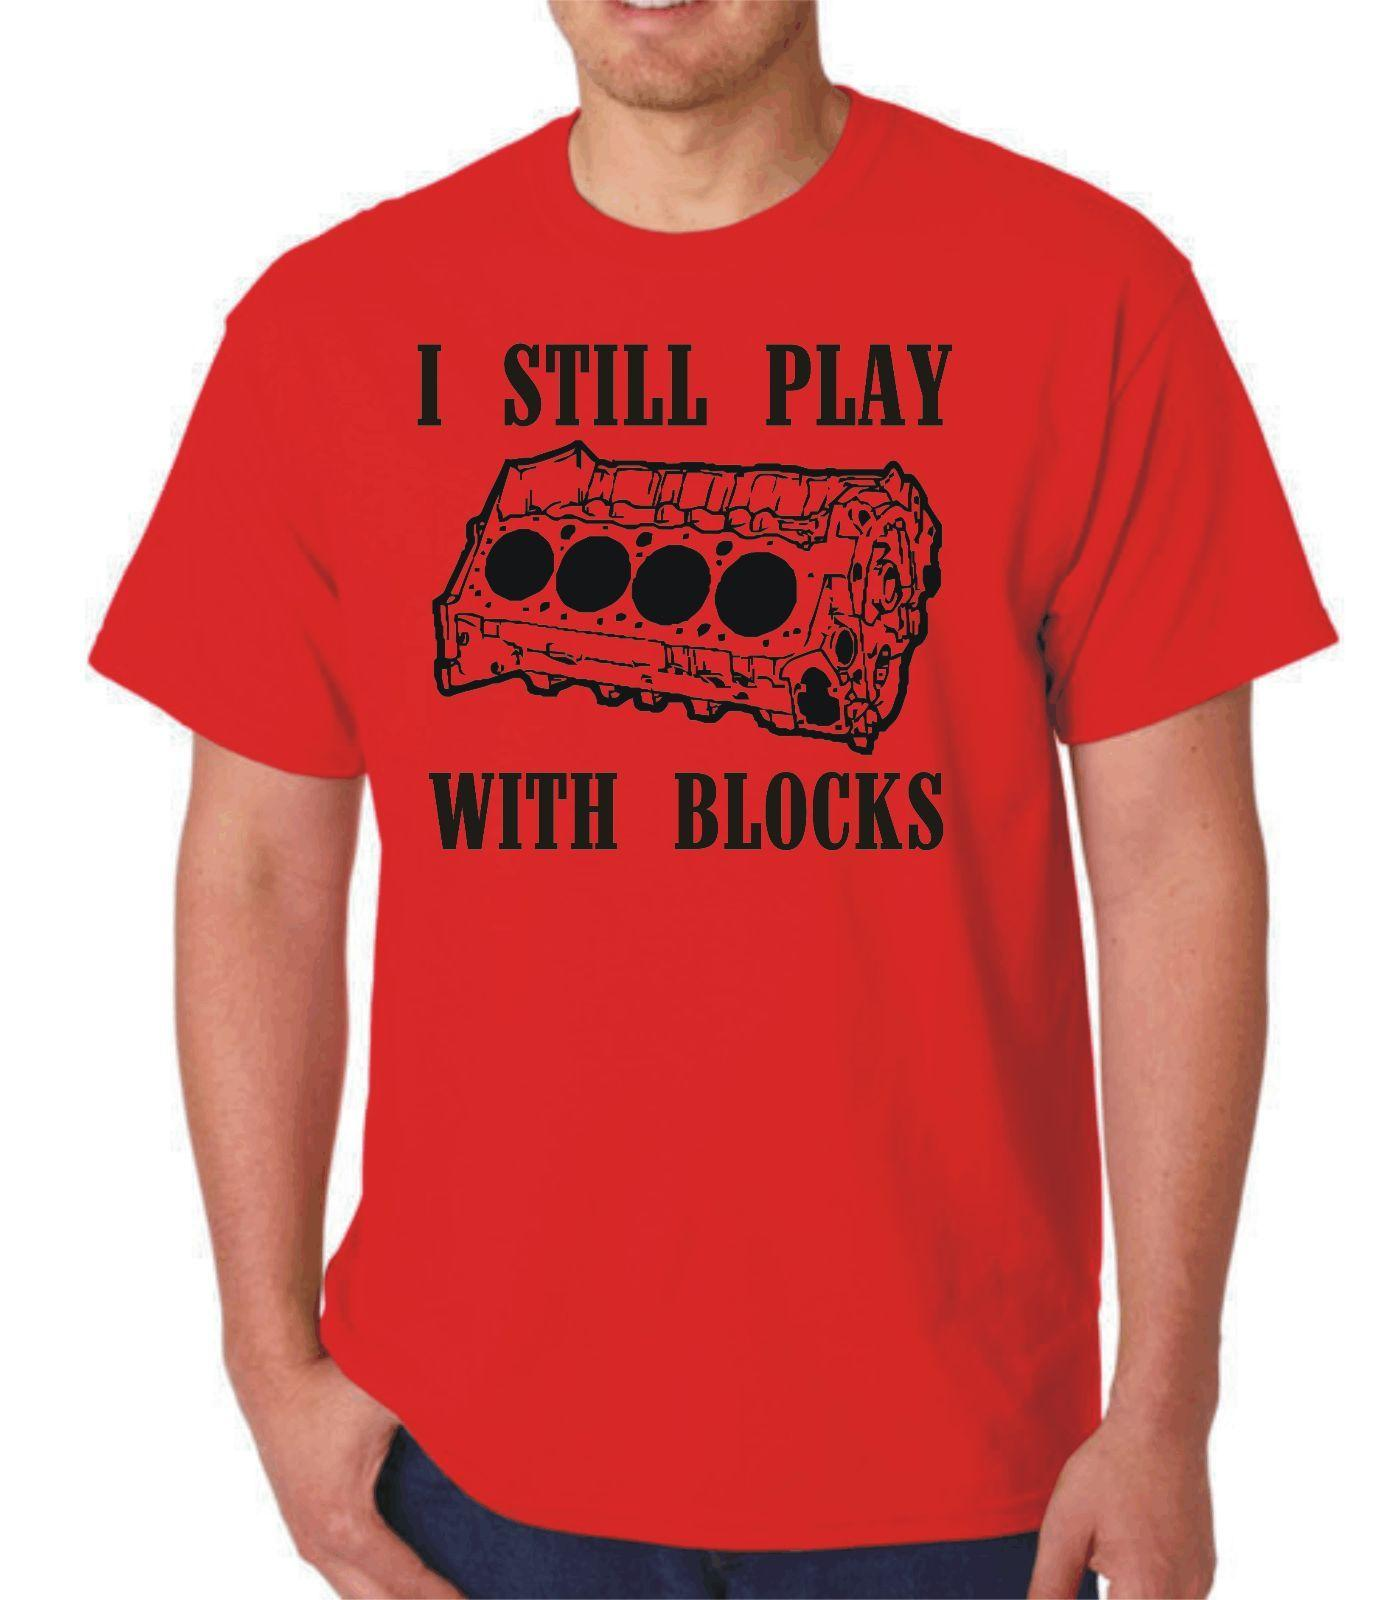 I STILL PLAY WITH BLOCKS AUTOMOTIVE HOT ROD T-SHIRT FUNNY V8 FORD CHEVY Funny free shipping